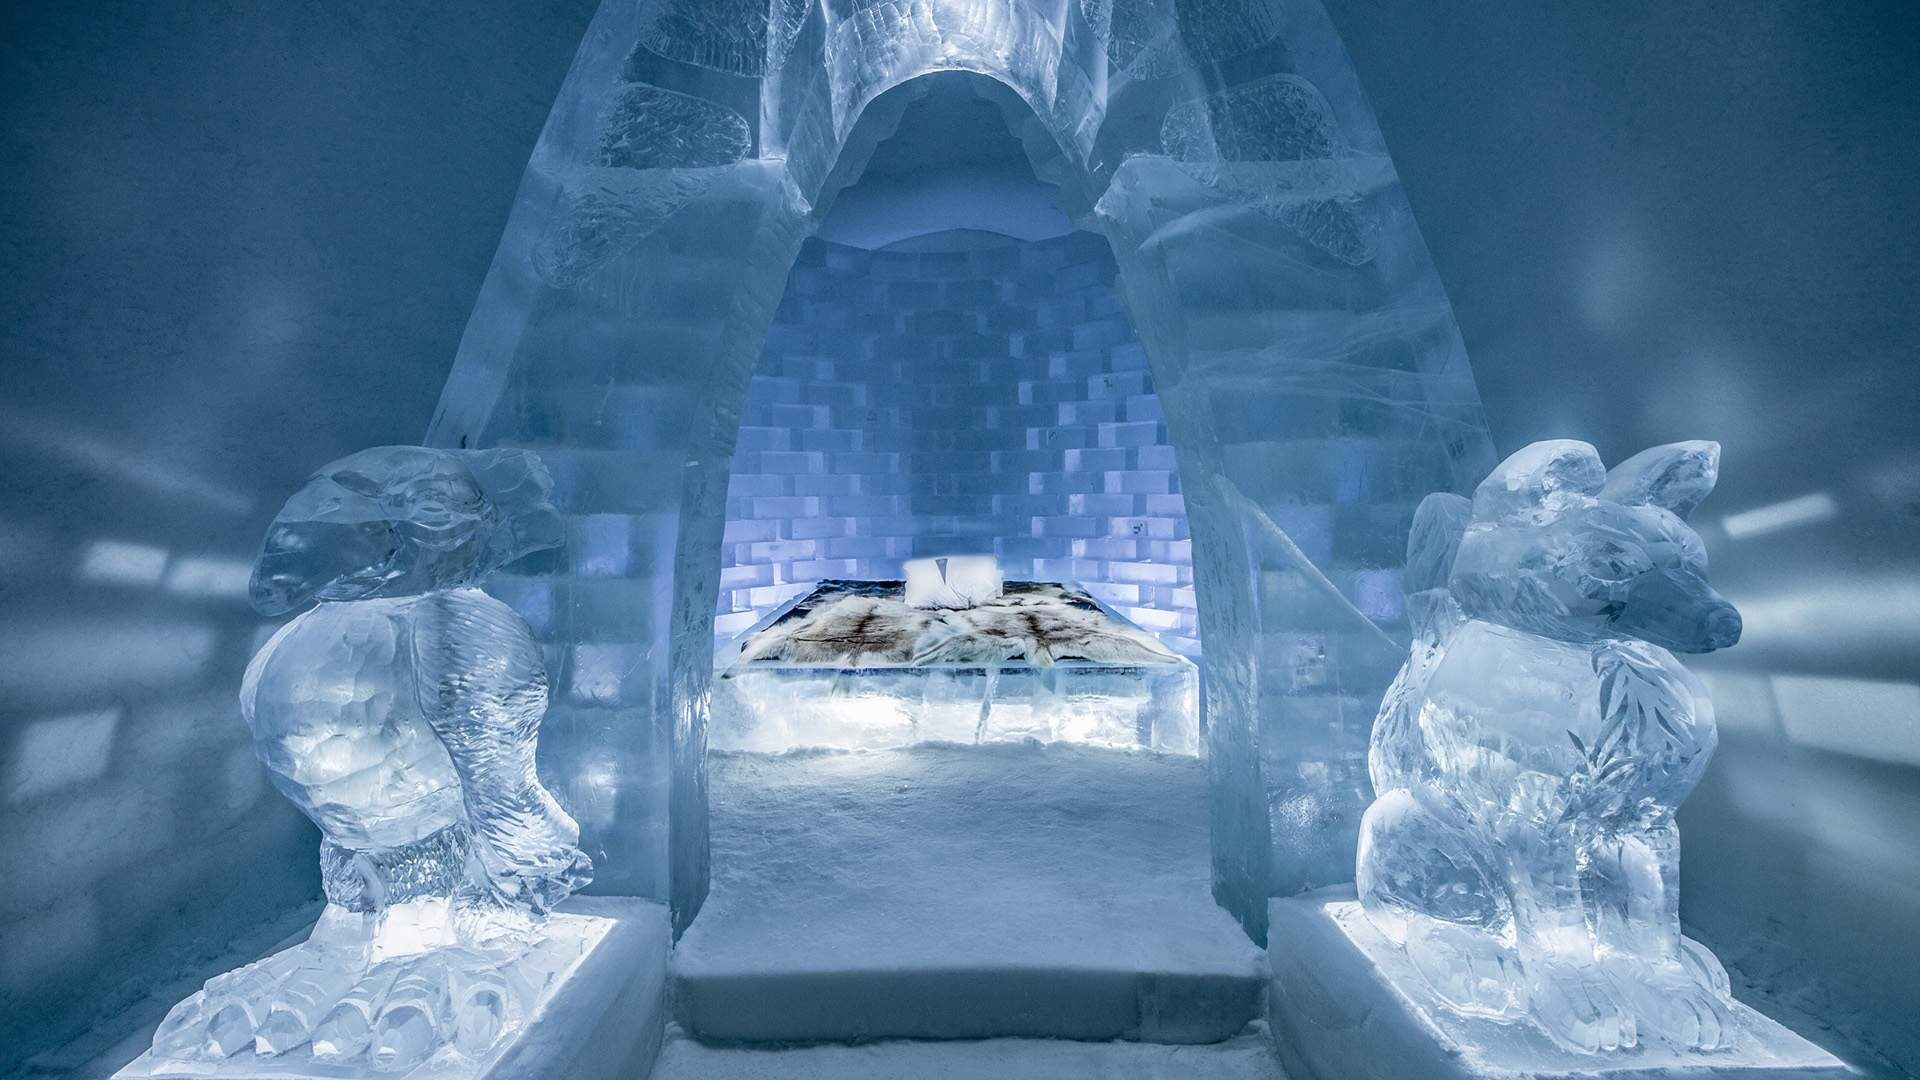 Sweden's Ice Hotel Has Unveiled Its New Batch of Super-Chilled Artist-Created Rooms